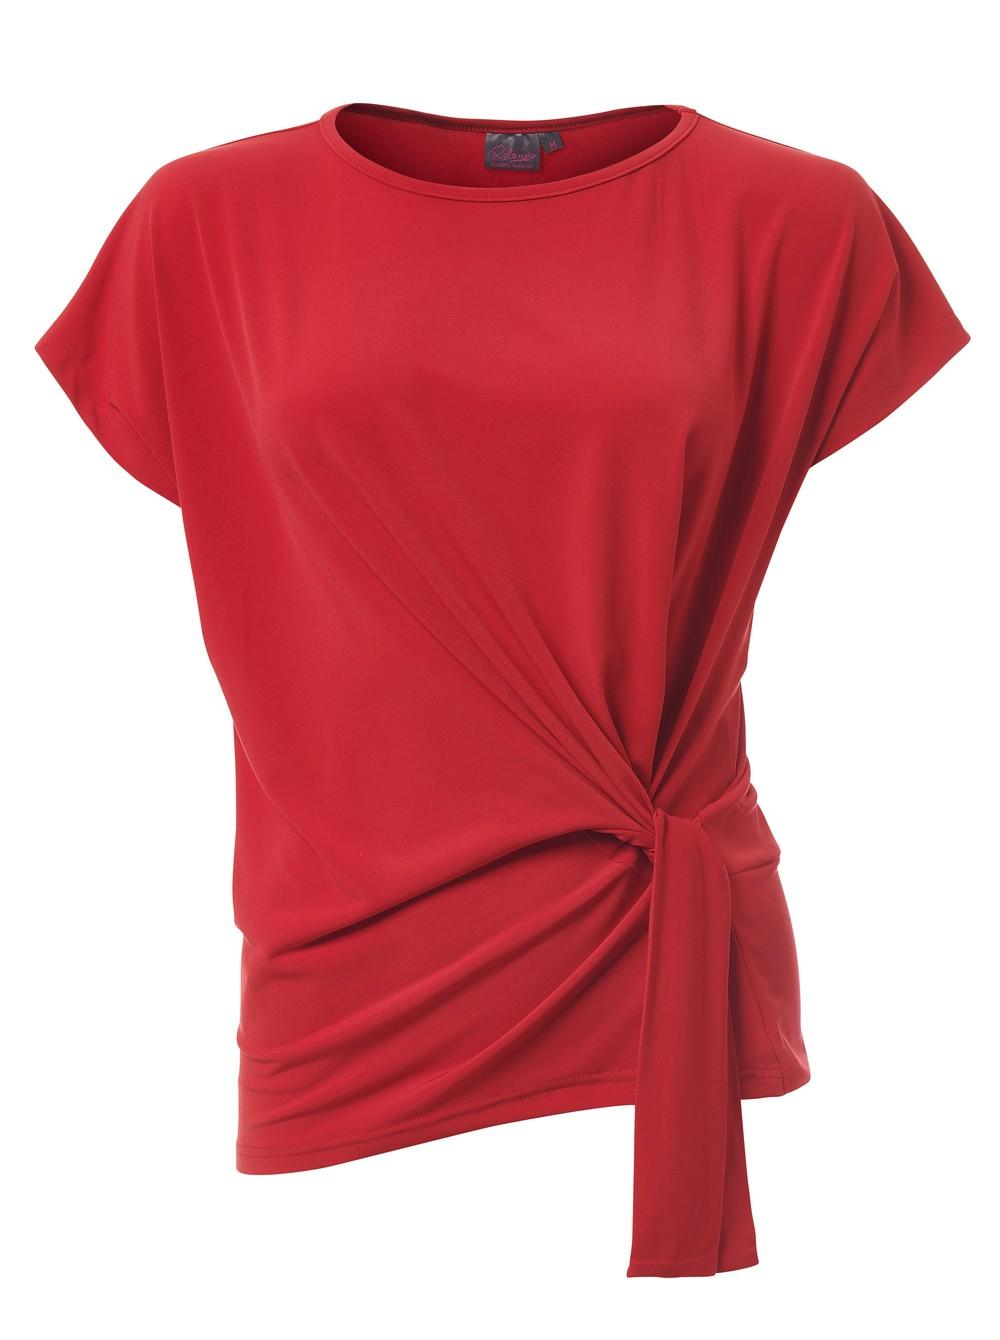 Ines K232 S/s Blouse - Red